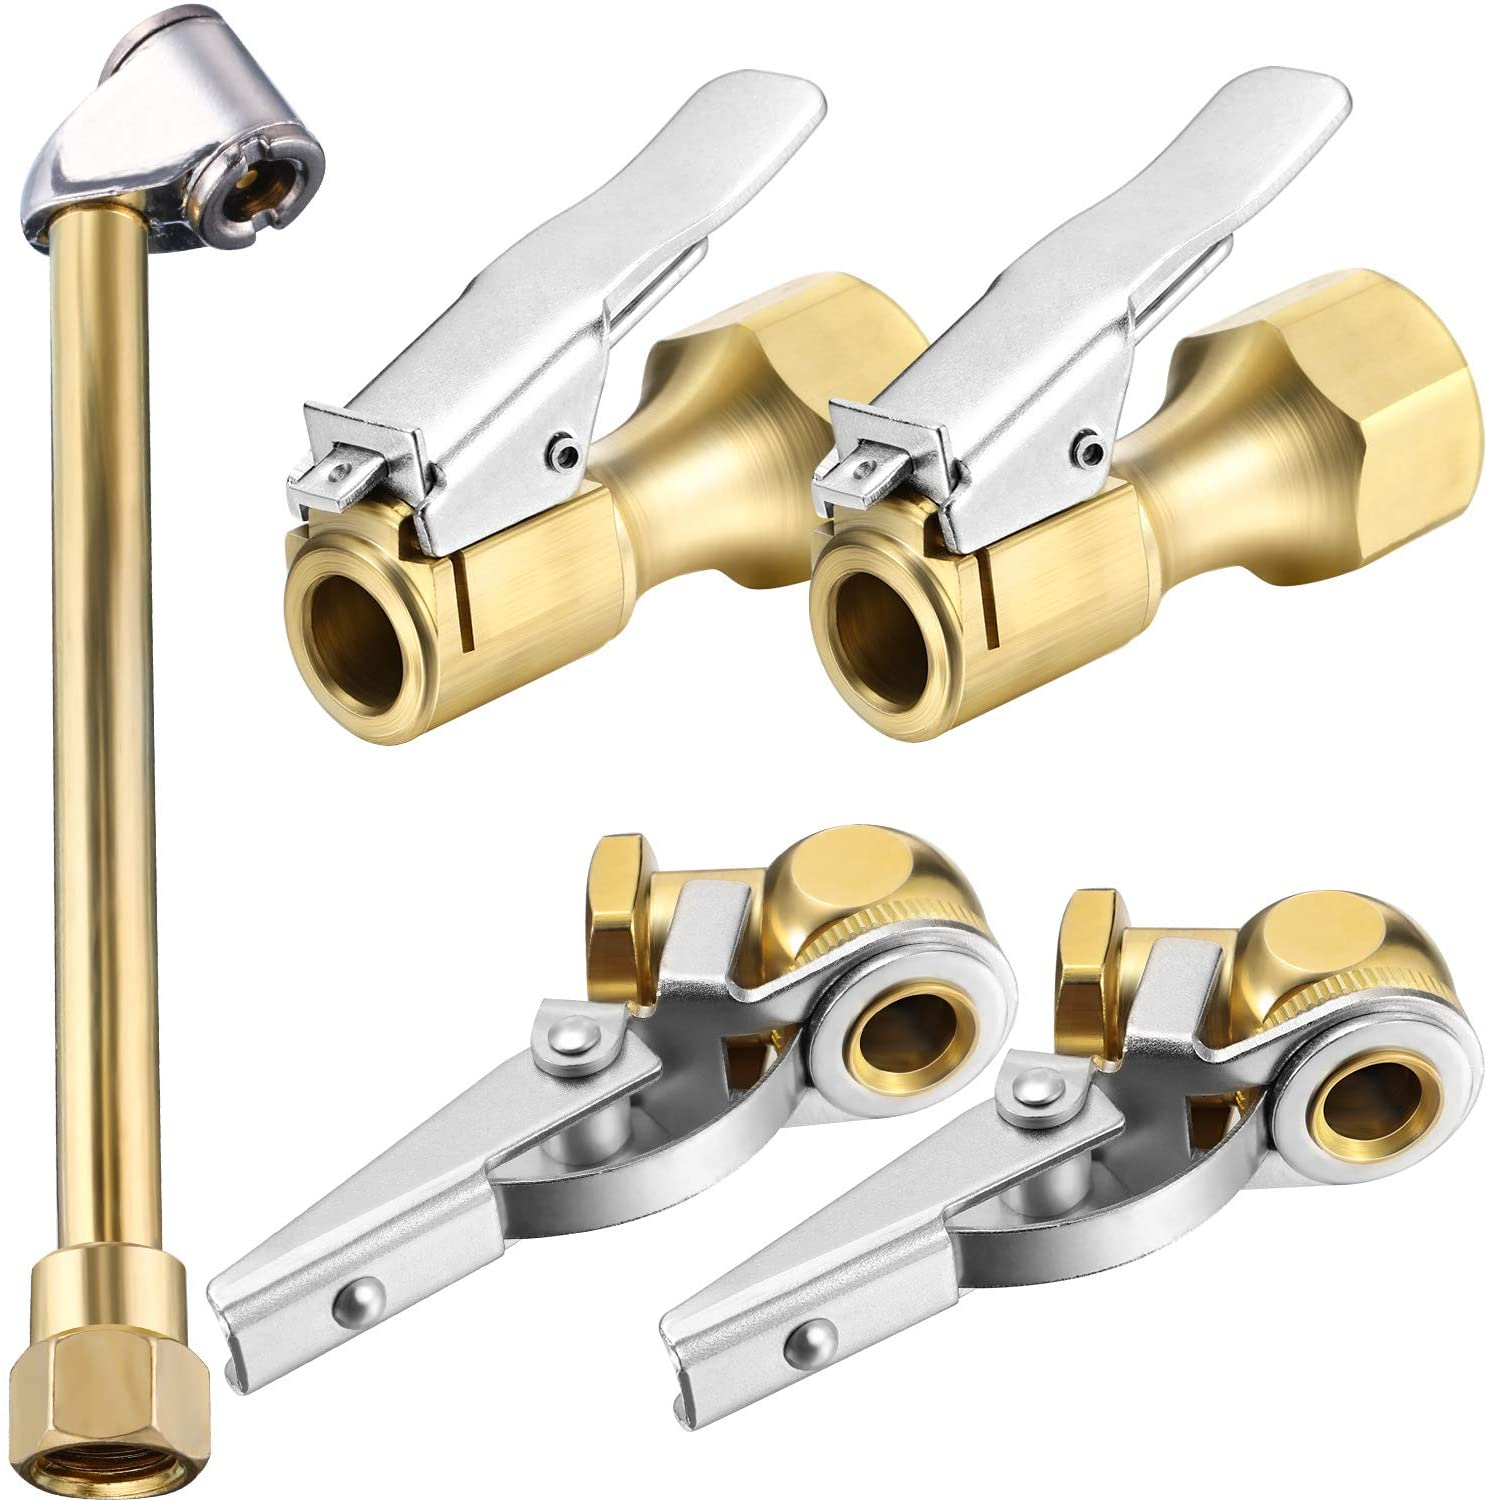 1//4 Brass Lock On Air Chuck Mudder Air Chuck Set 1//4 Metal Lock on Air Chuck and Locking Air Chuck with Air Hose and Standard Tire Valve Fine Thread for Portable Tire Inflator